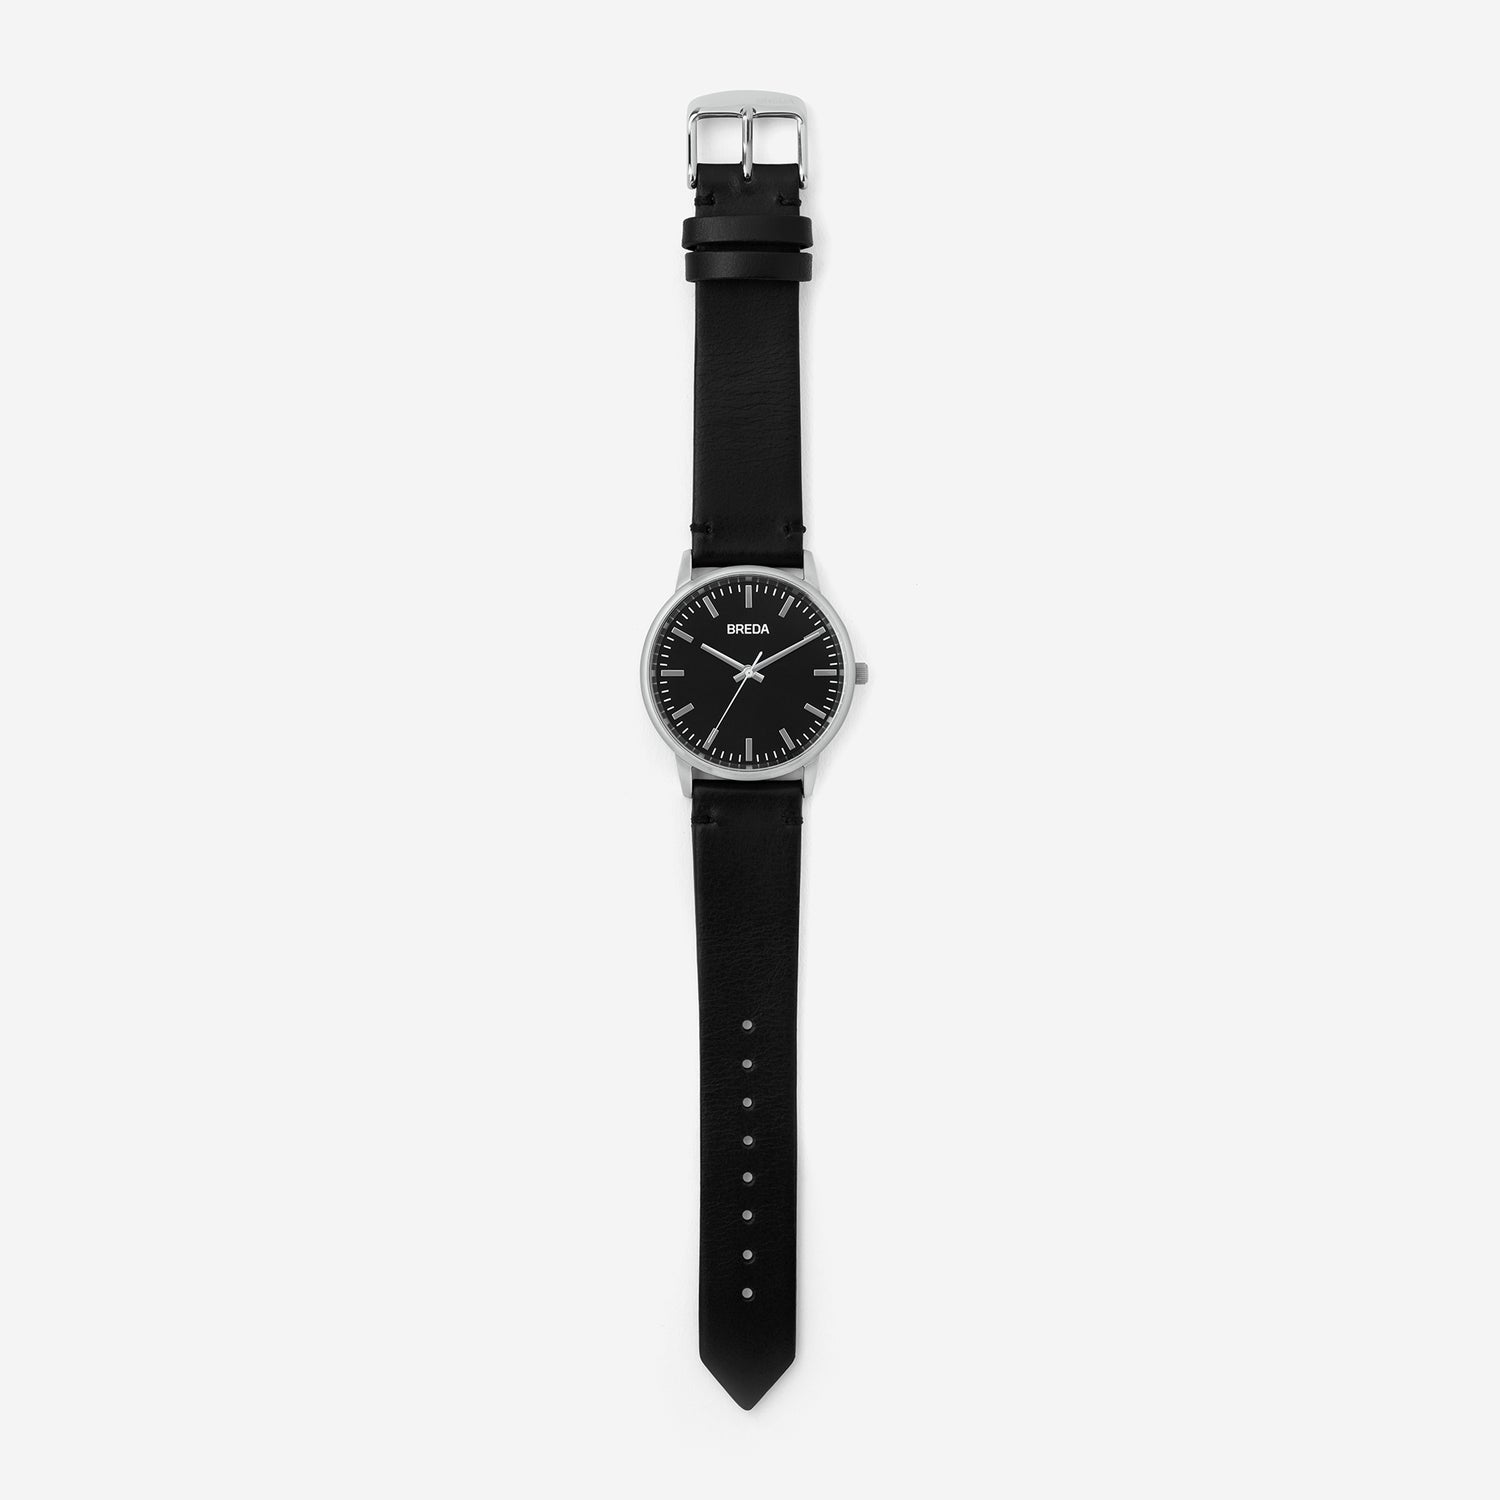 breda-zapf-1697k-silver-black-leather-watch-long